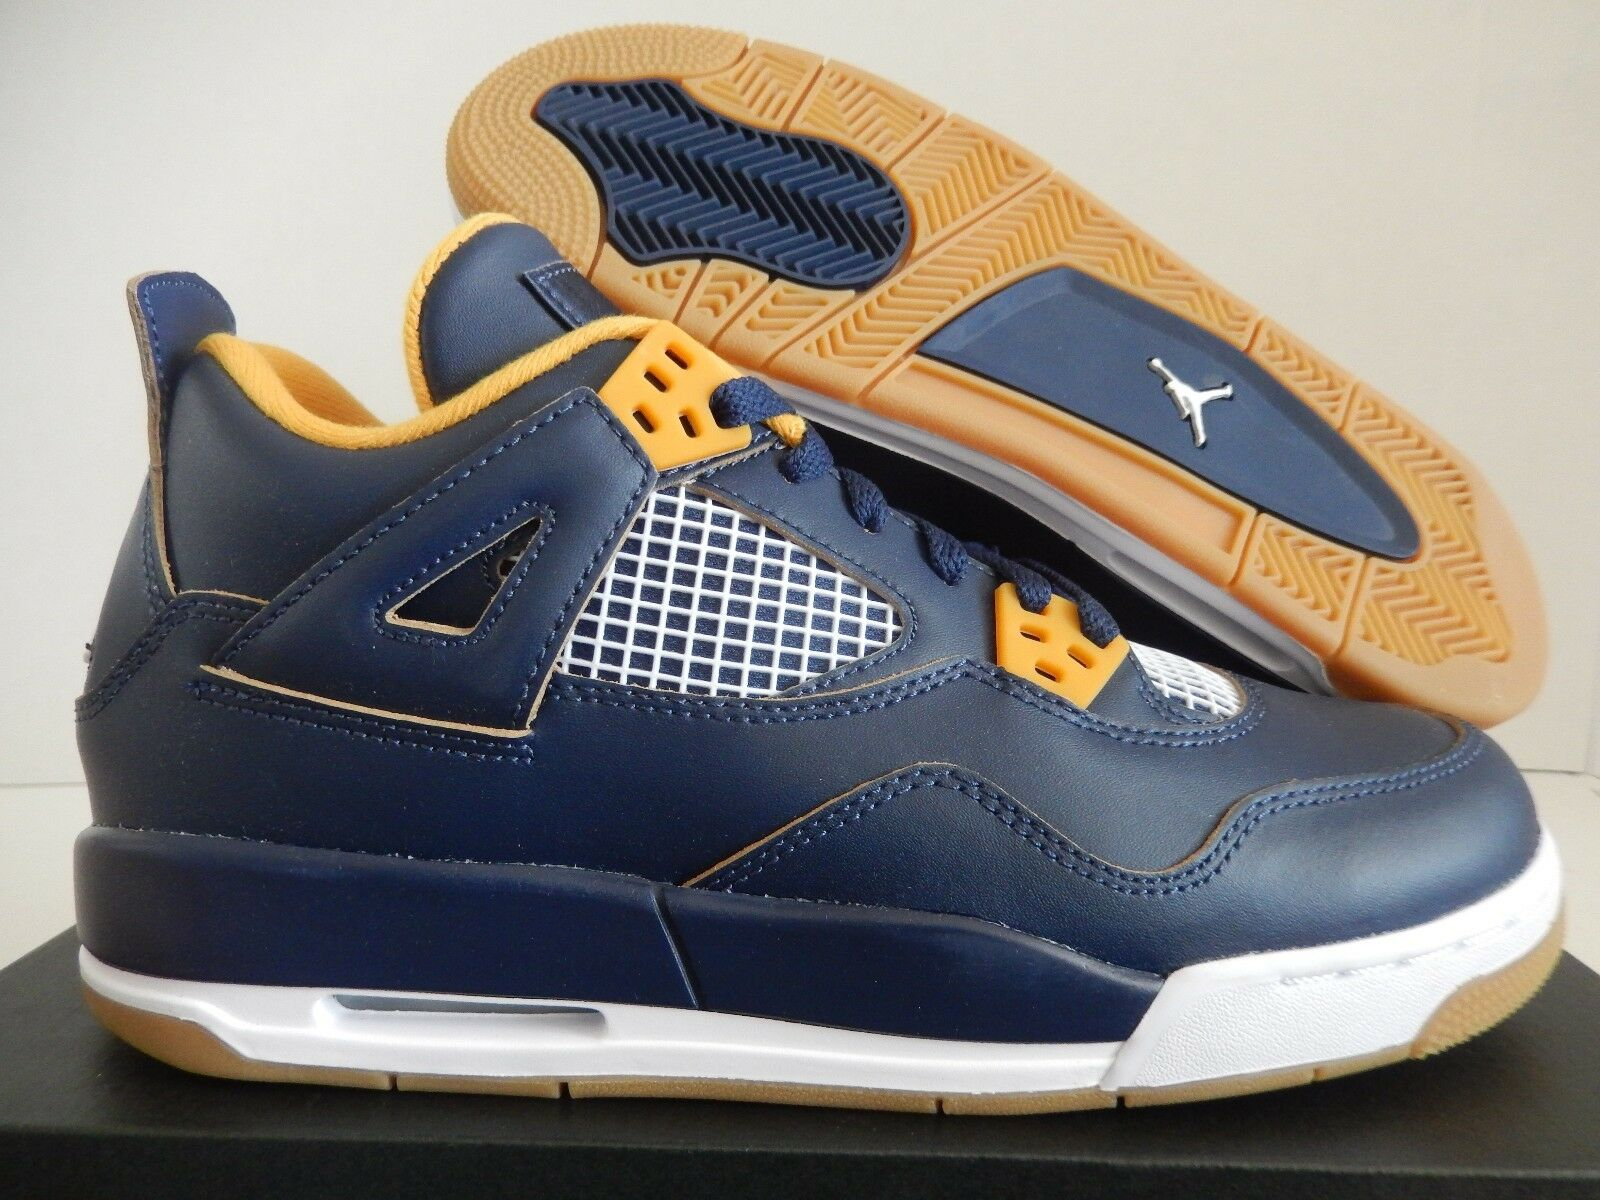 NIKE AIR JORDAN 4 RETRO BG MIDNIGHT NAVY blueE SZ 7Y-WMNS SZ 8.5 [408452-425]